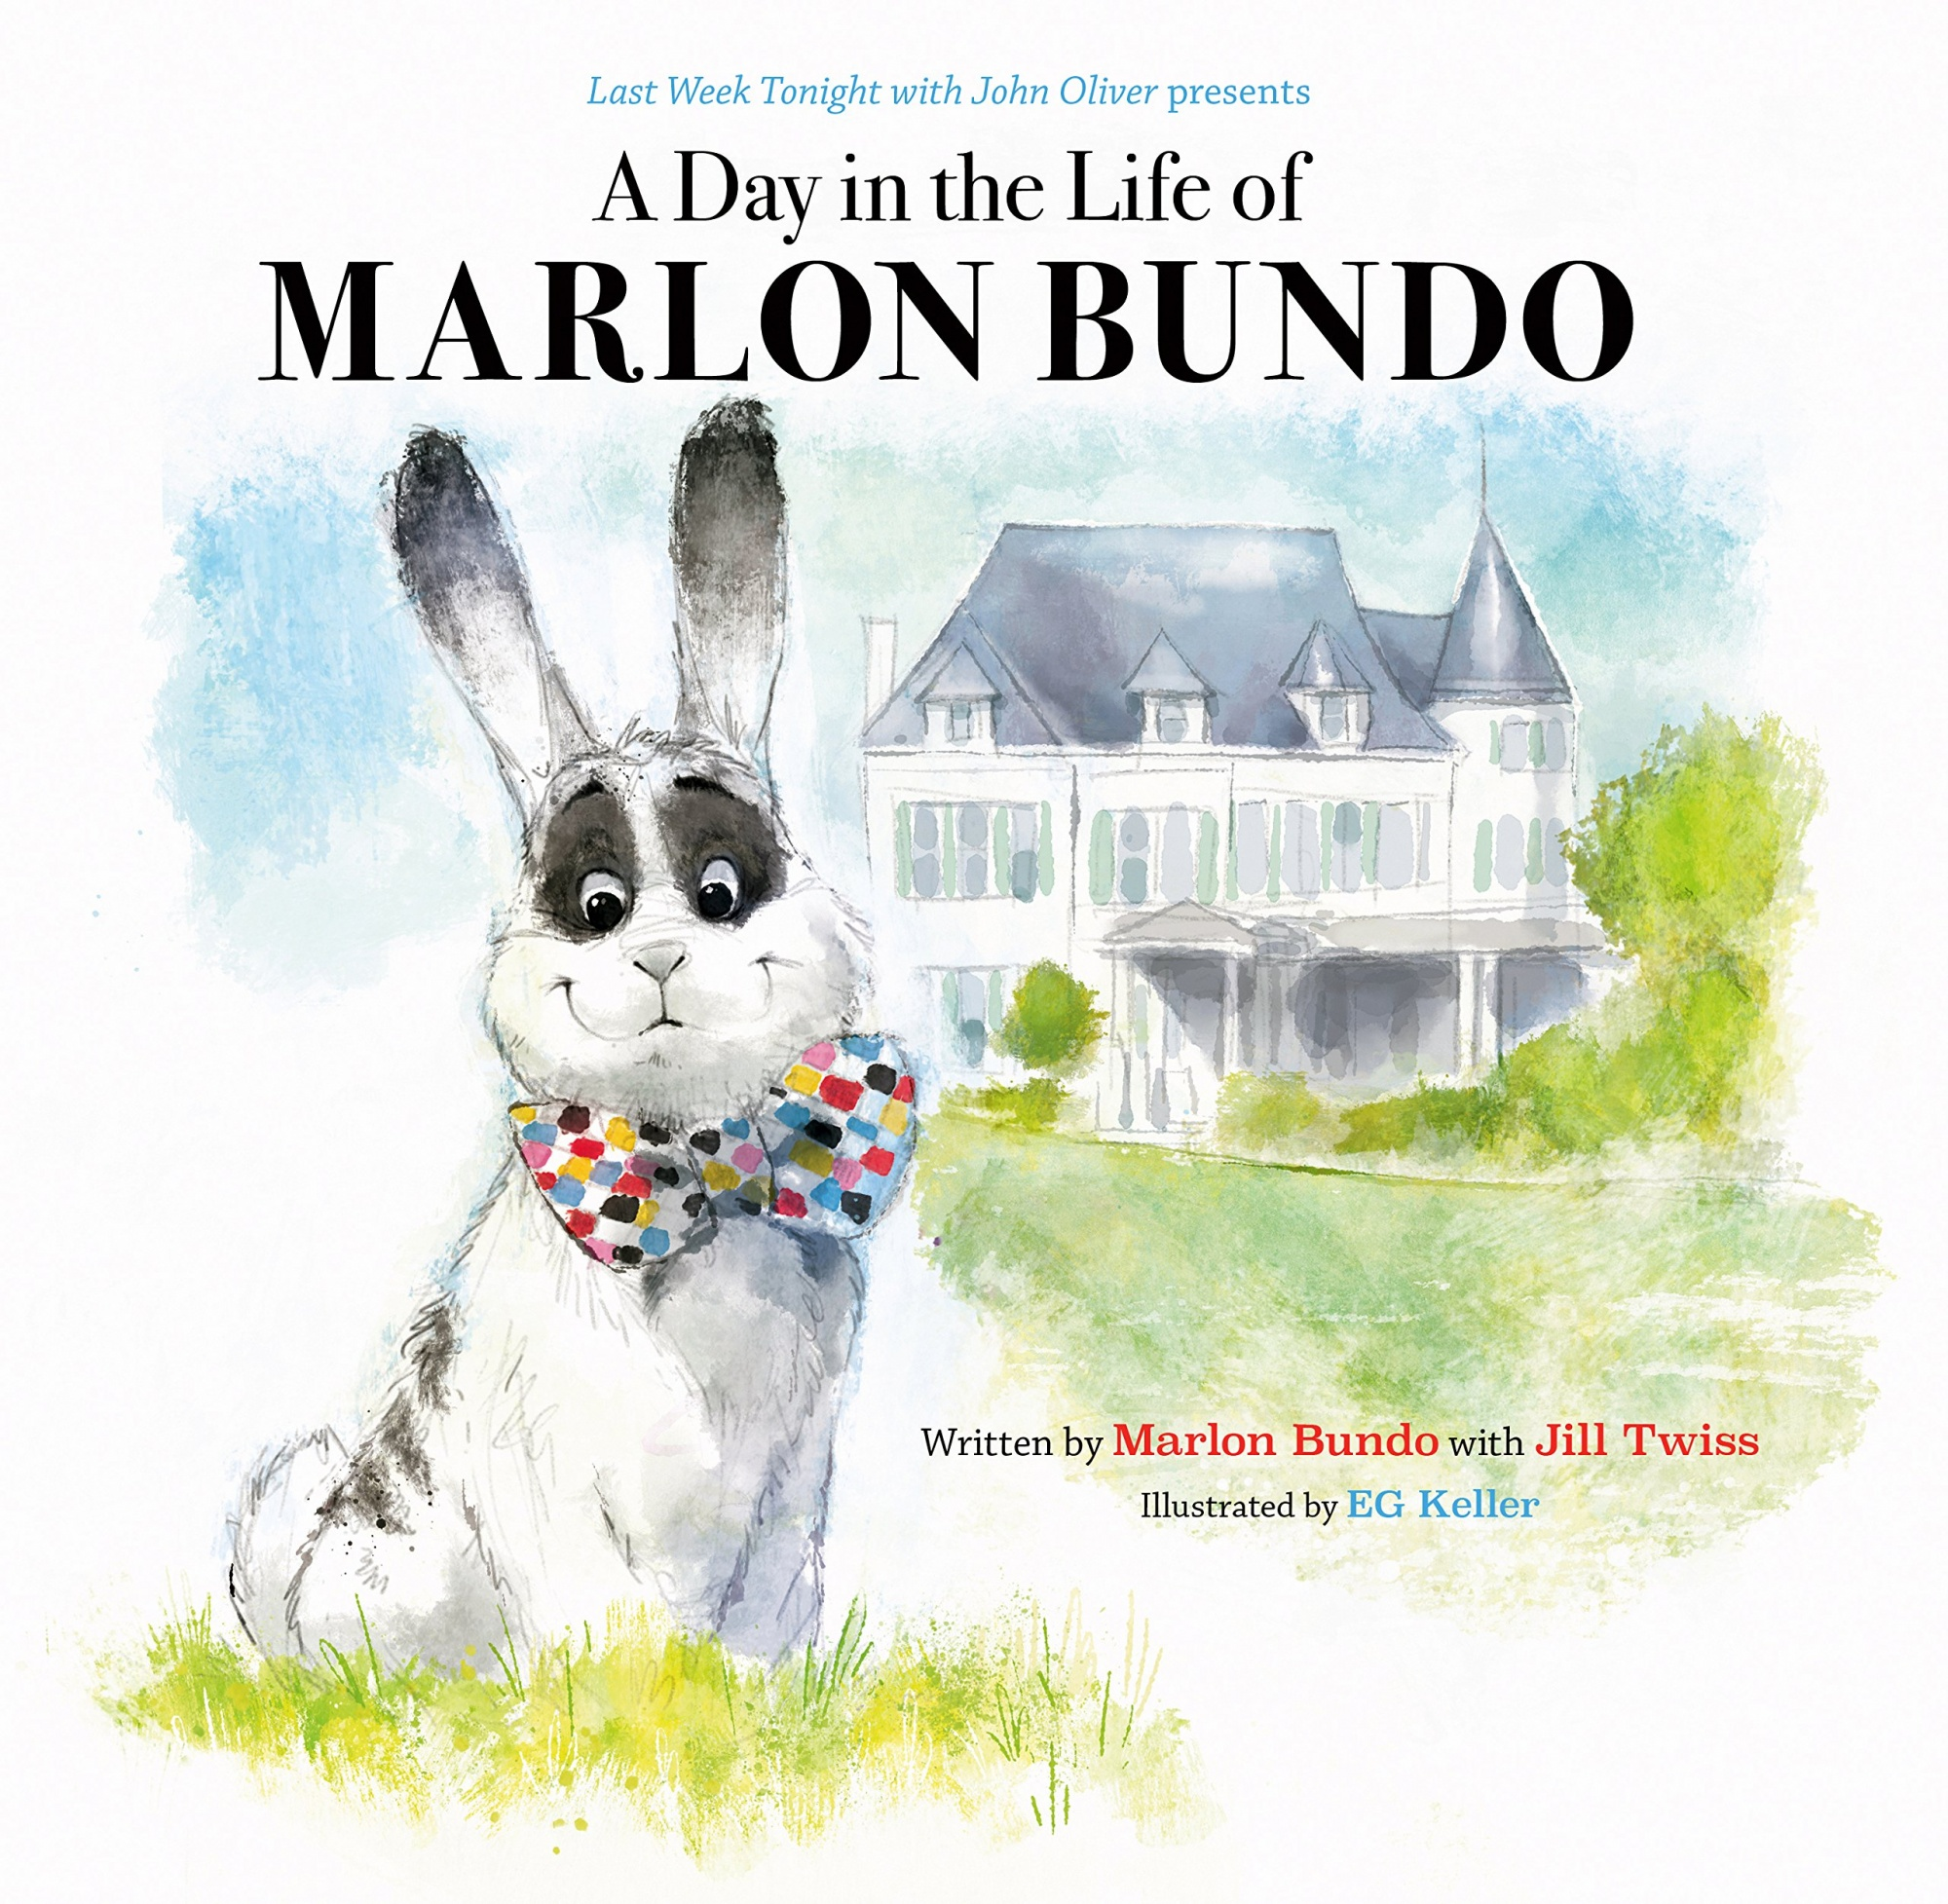 Last Week Tonight with John Oliver Presents: a Day in the Life of Marlon Bundo by Marlon Bundo, Jill Twiss, EG Keller, ISBN: 9781452173801